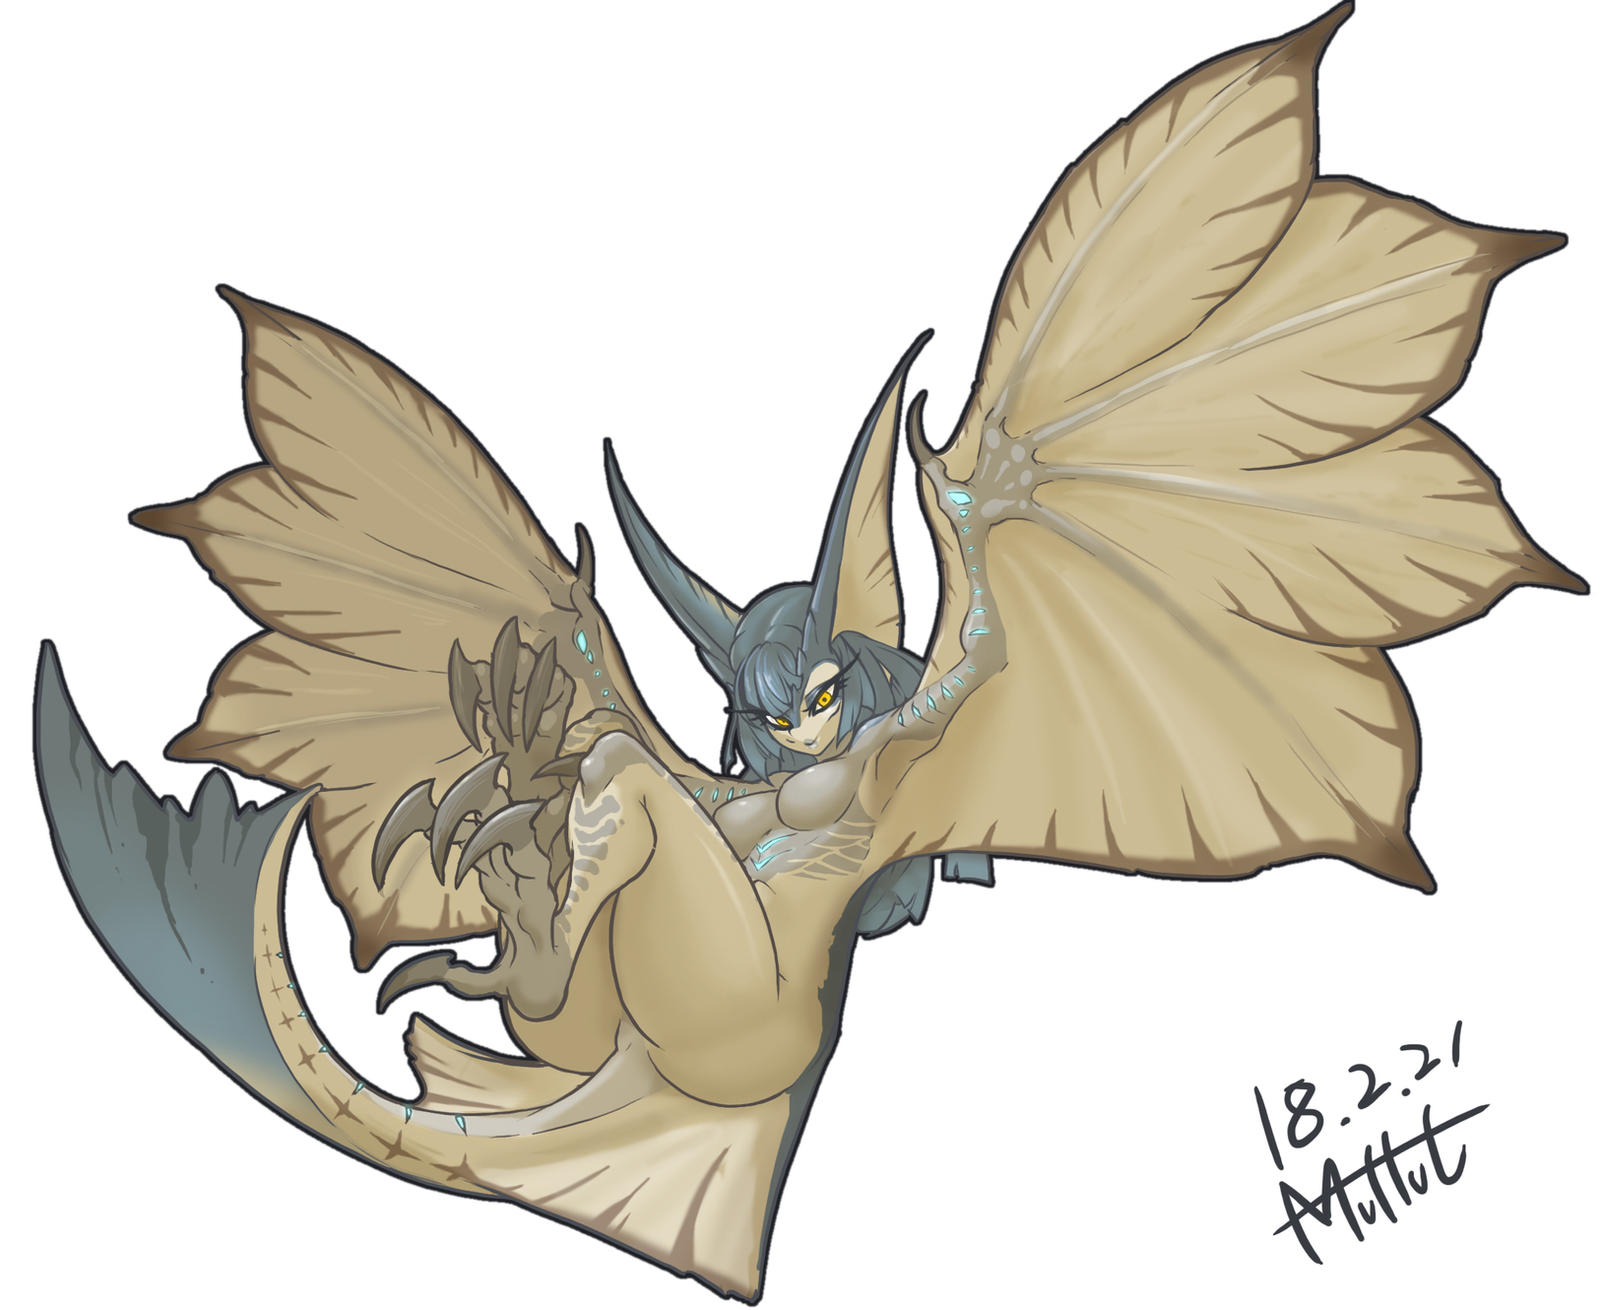 Legiana Humanization By Muhut On Deviantart